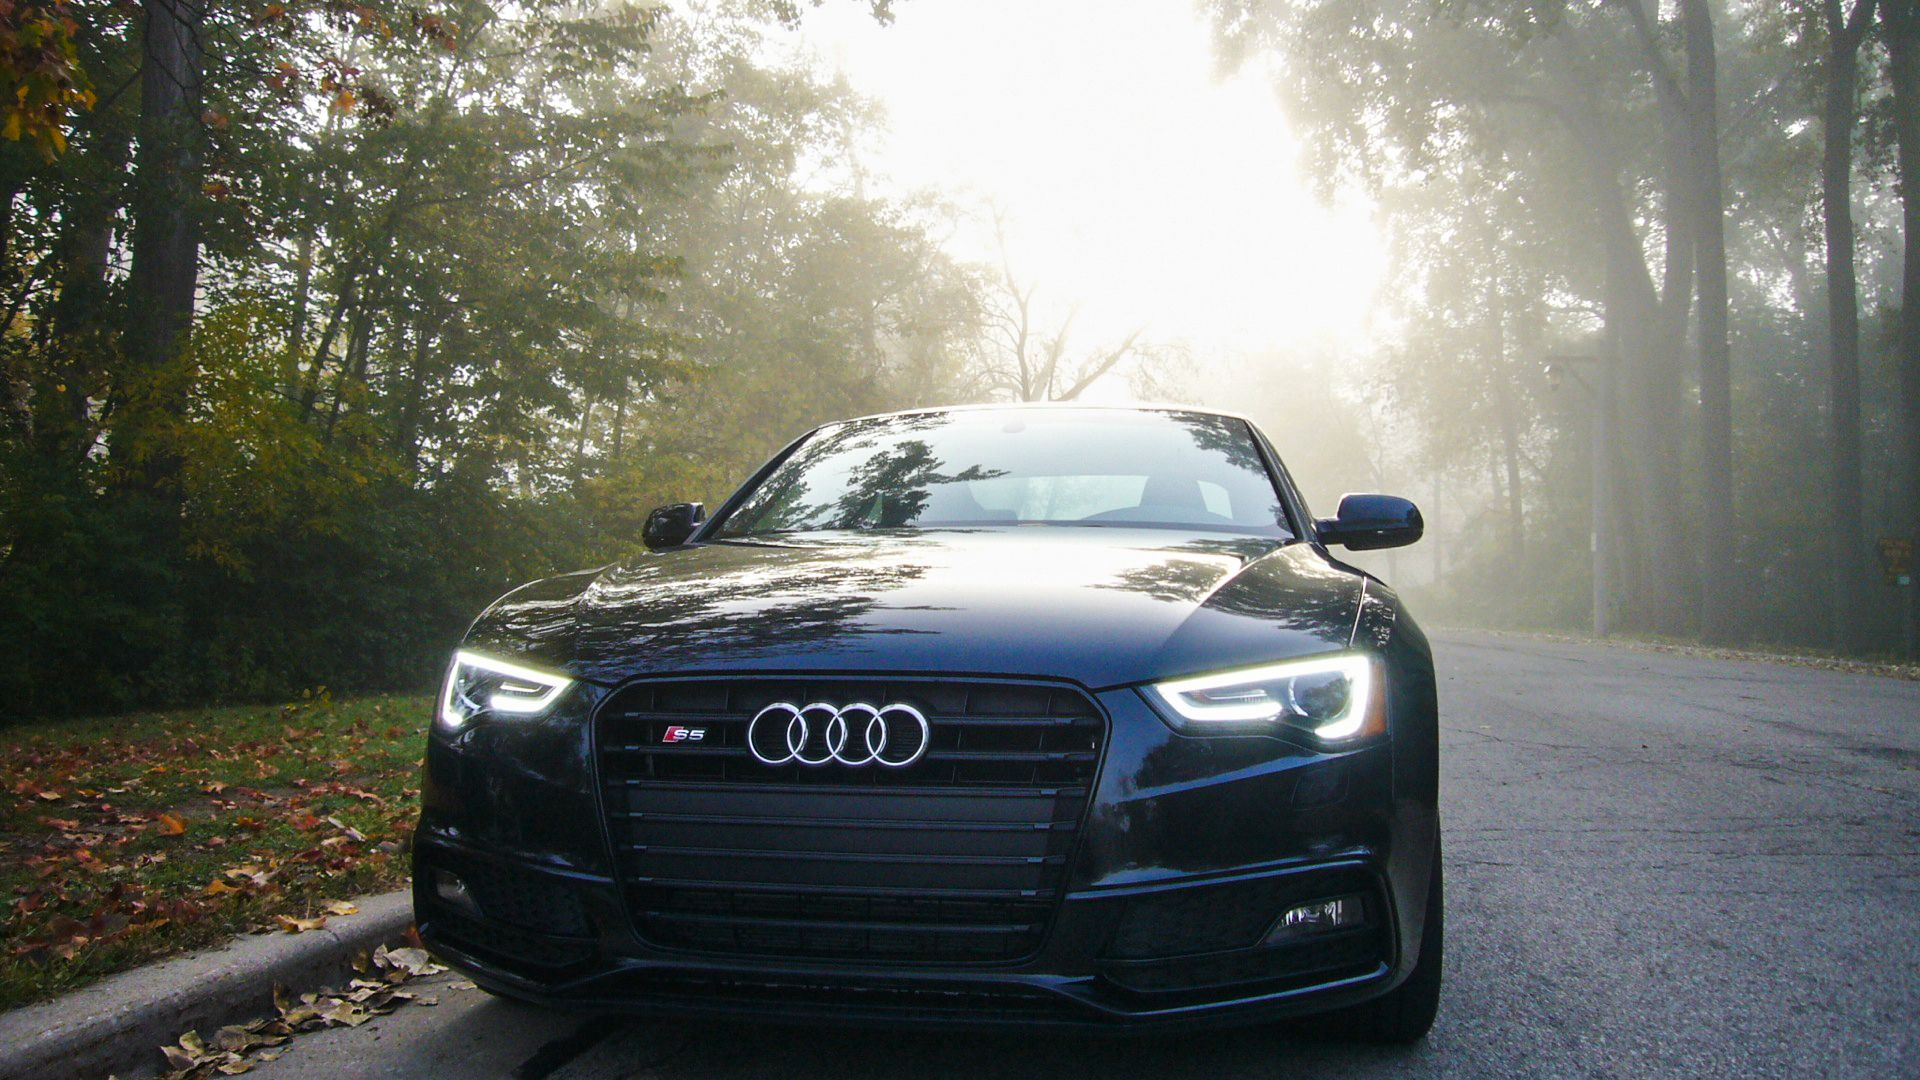 By Robert S Schultz Like The Early Morning Mists Of Autumn Black Optic Package Audis Are Stealthily Materializing At Dealerships They R Audi S4 Audi Audi S5